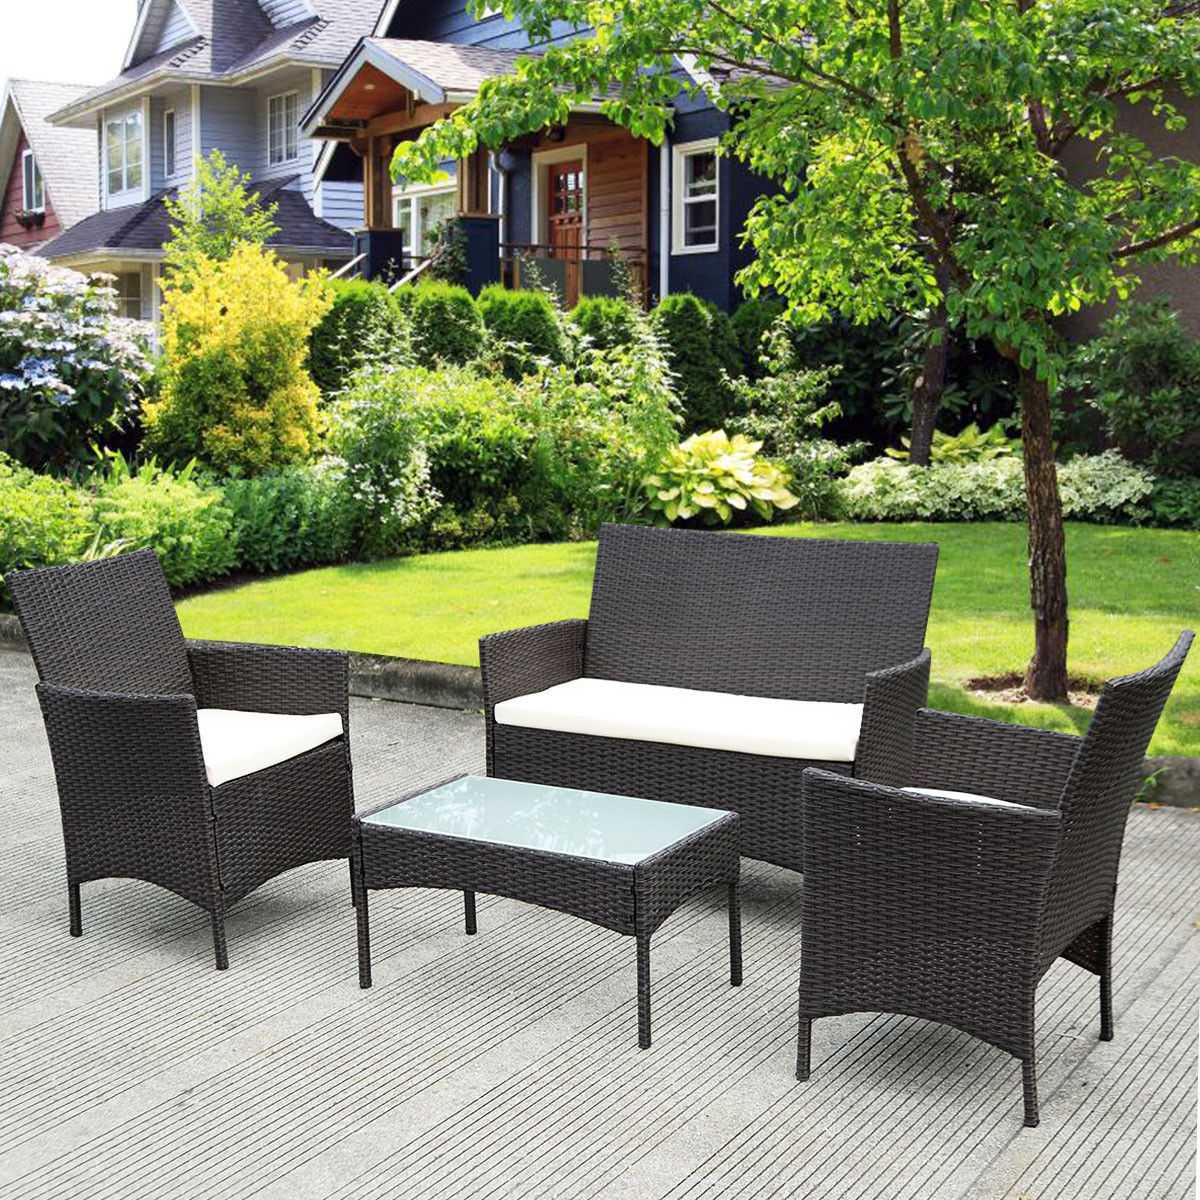 Merveilleux Costway 4 PC Patio Rattan Wicker Chair Sofa Table Set Outdoor Garden  Furniture Cushioned